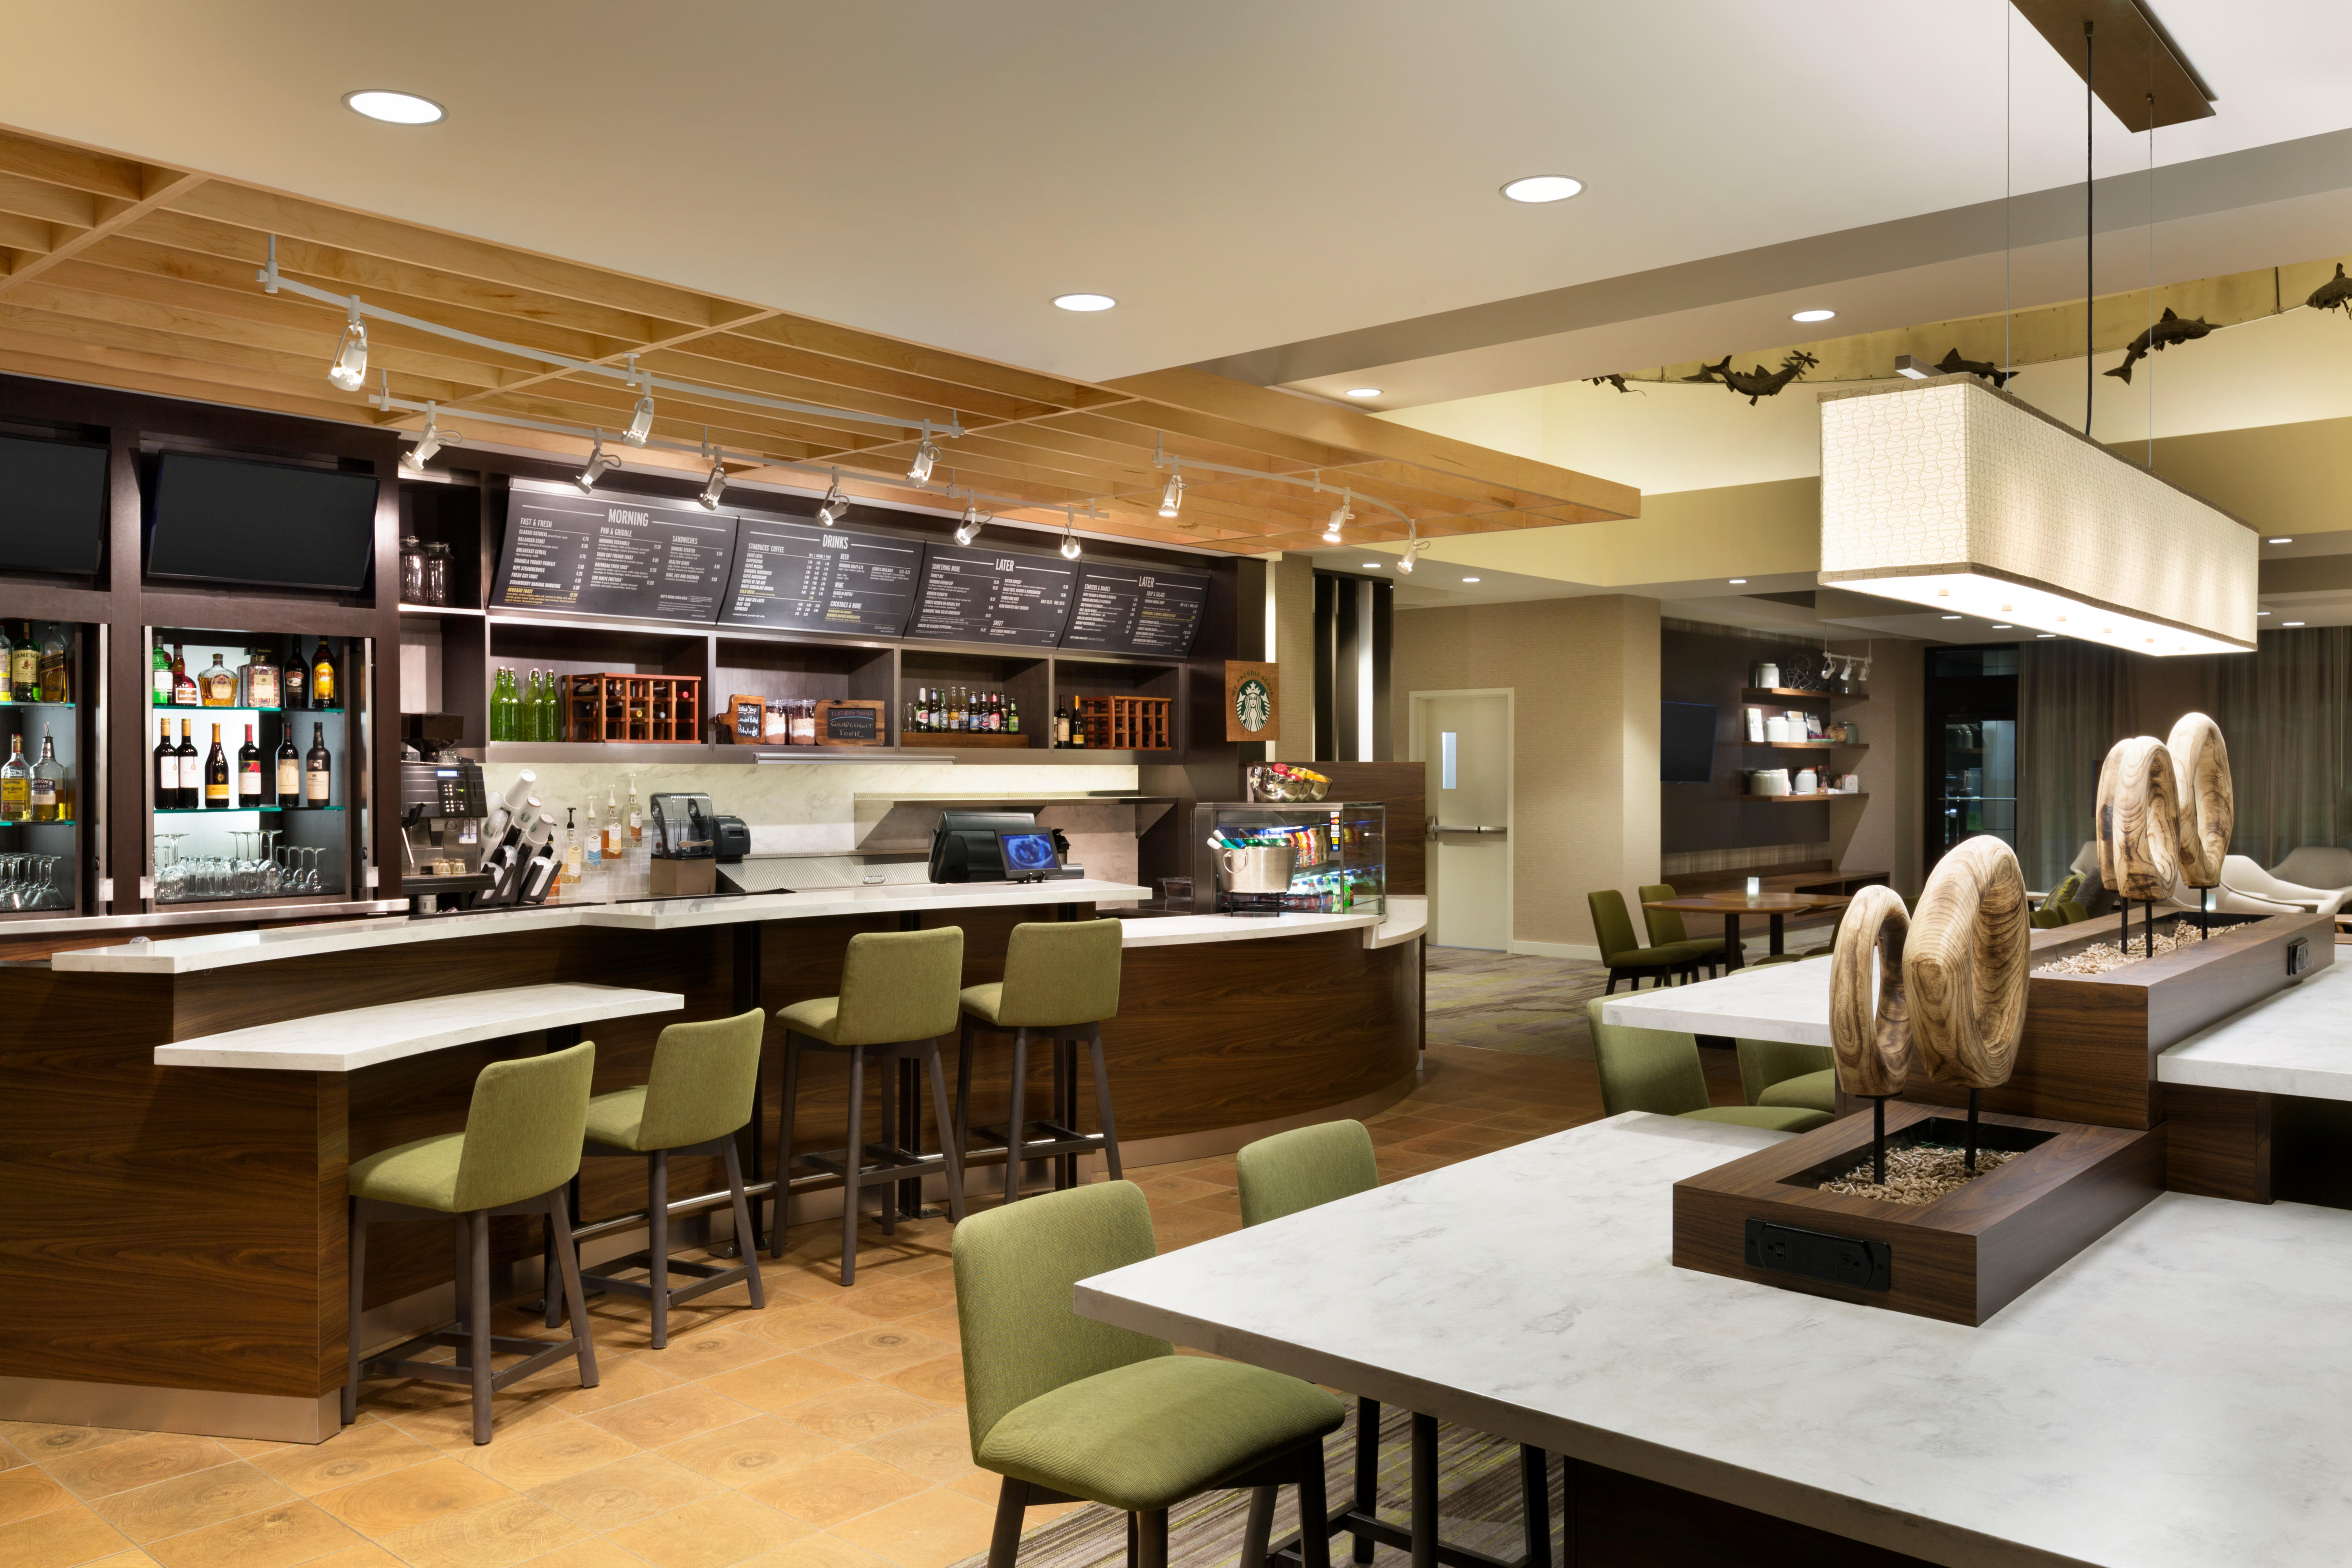 Bistro Restaurant Courtyard by Marriott Cold Lake Cold Lake (780)594-0989